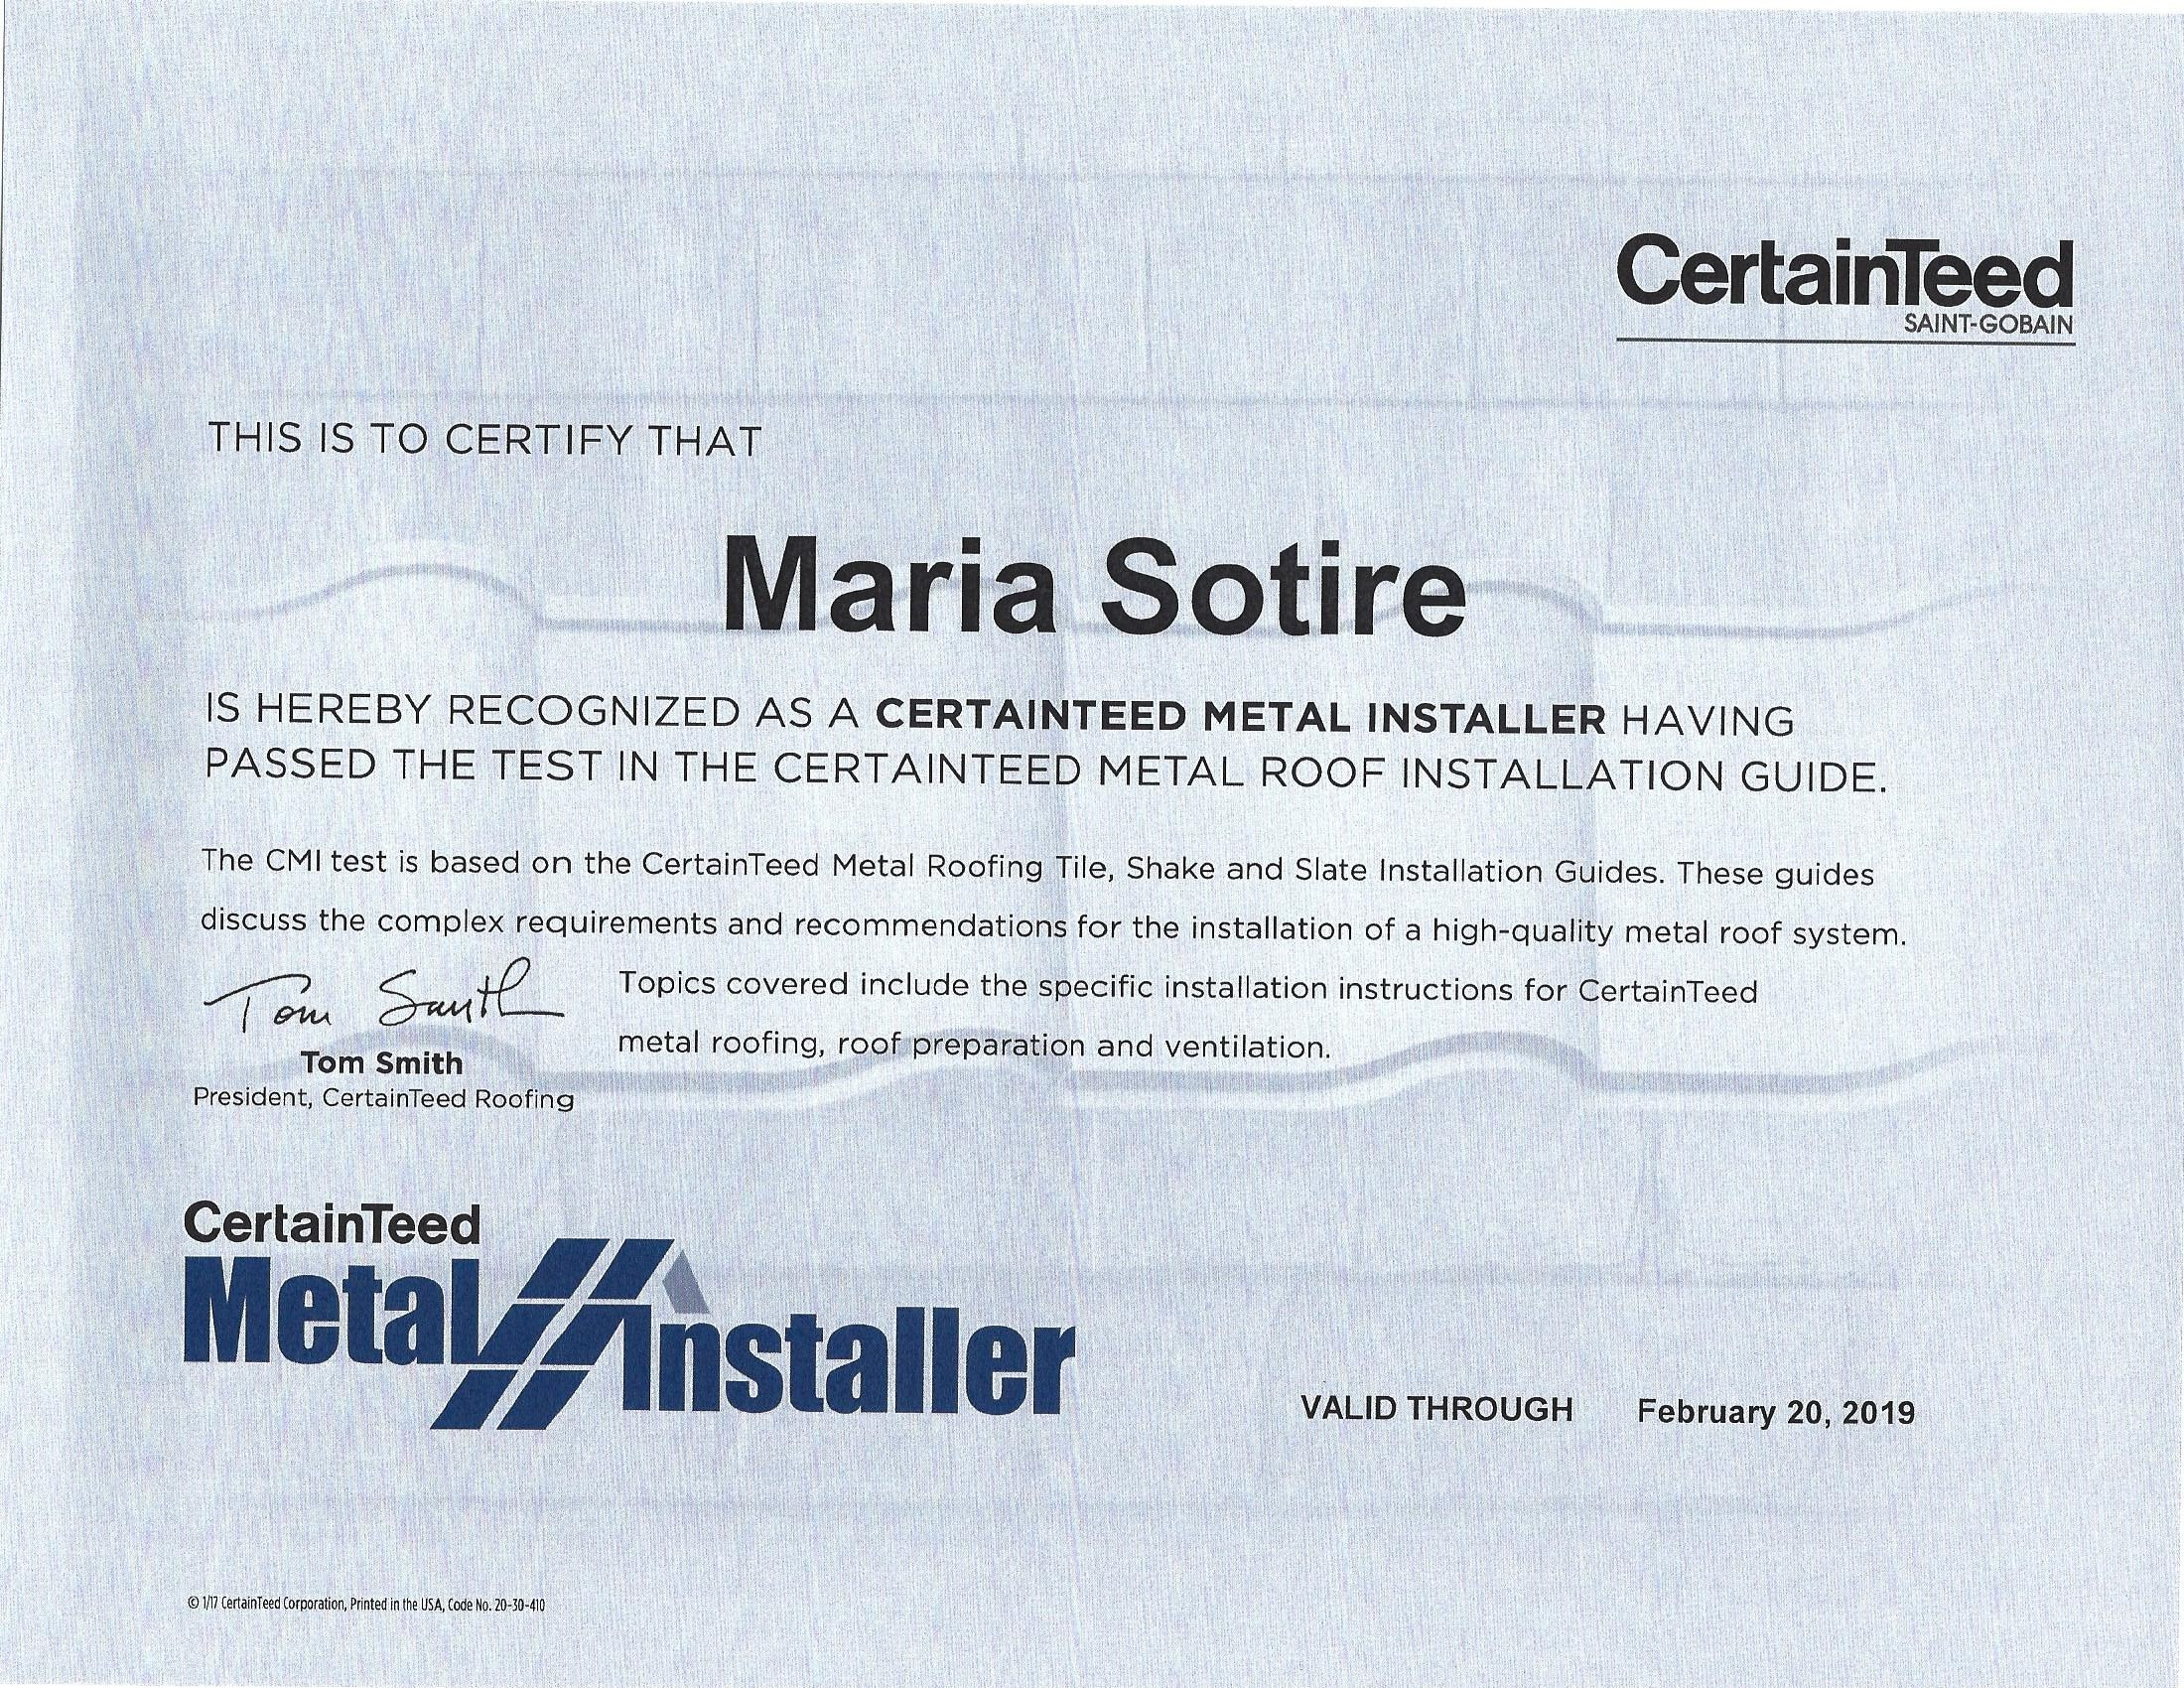 CertainTeed Metal Installer